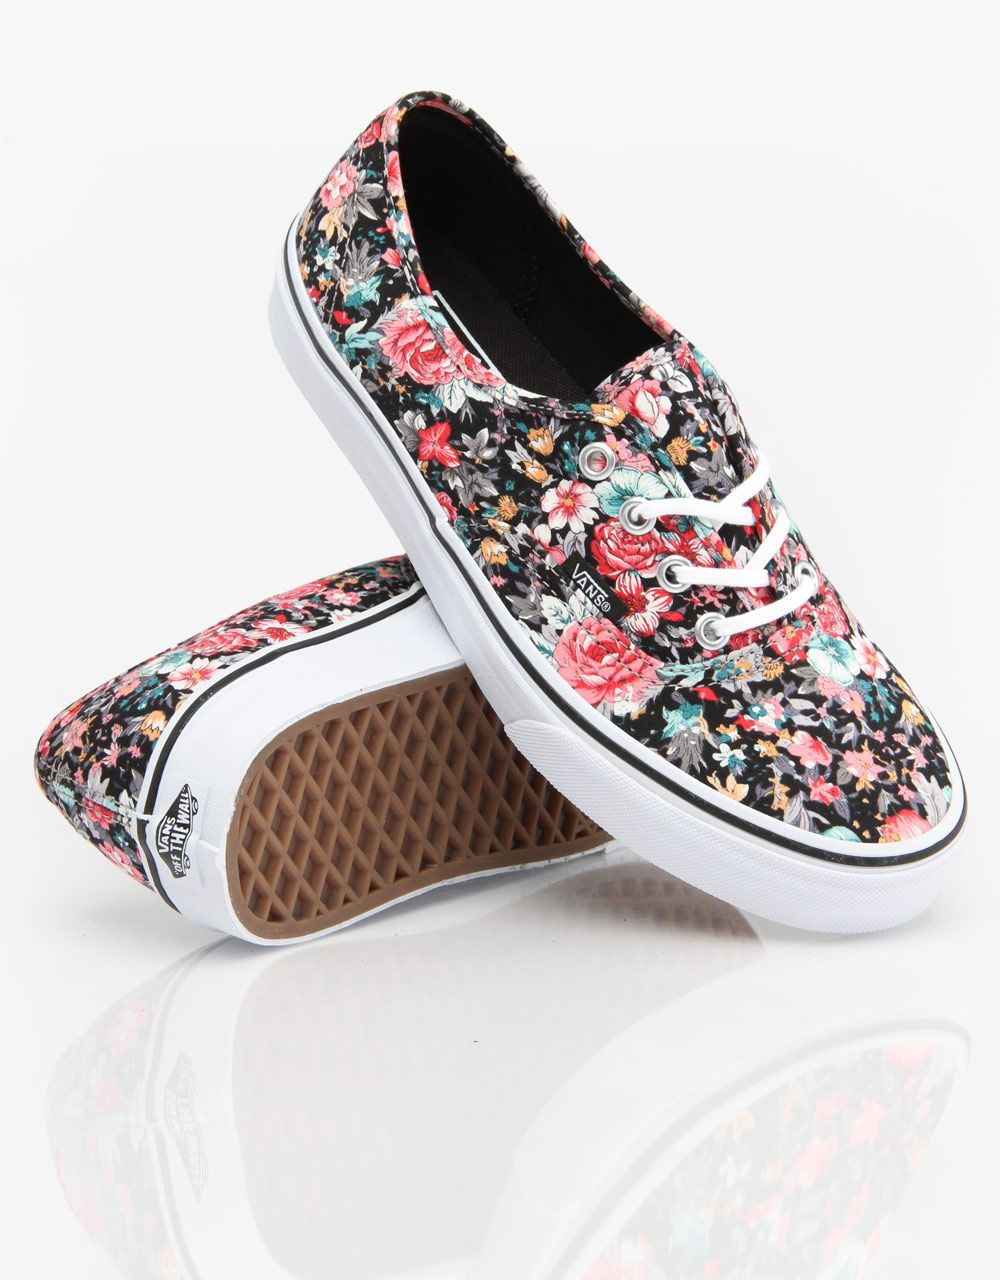 c4333be07f Vans Authentic Girls Skate Shoes - Multi Floral Black True White ...